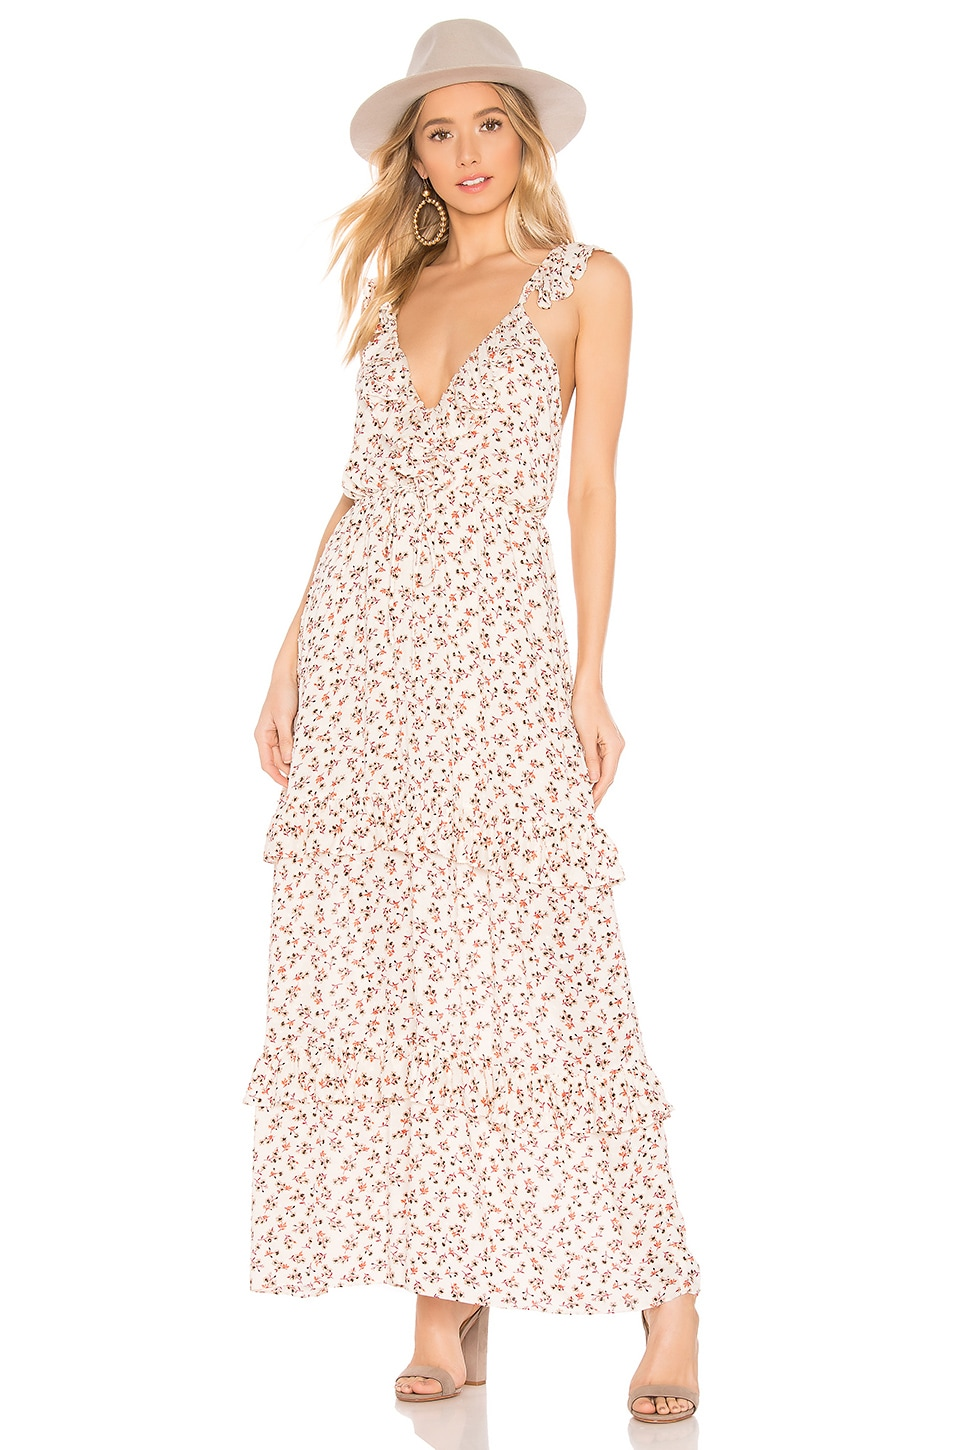 Blue Life Valerie Maxi Dress in Cherry Blossom Ivory